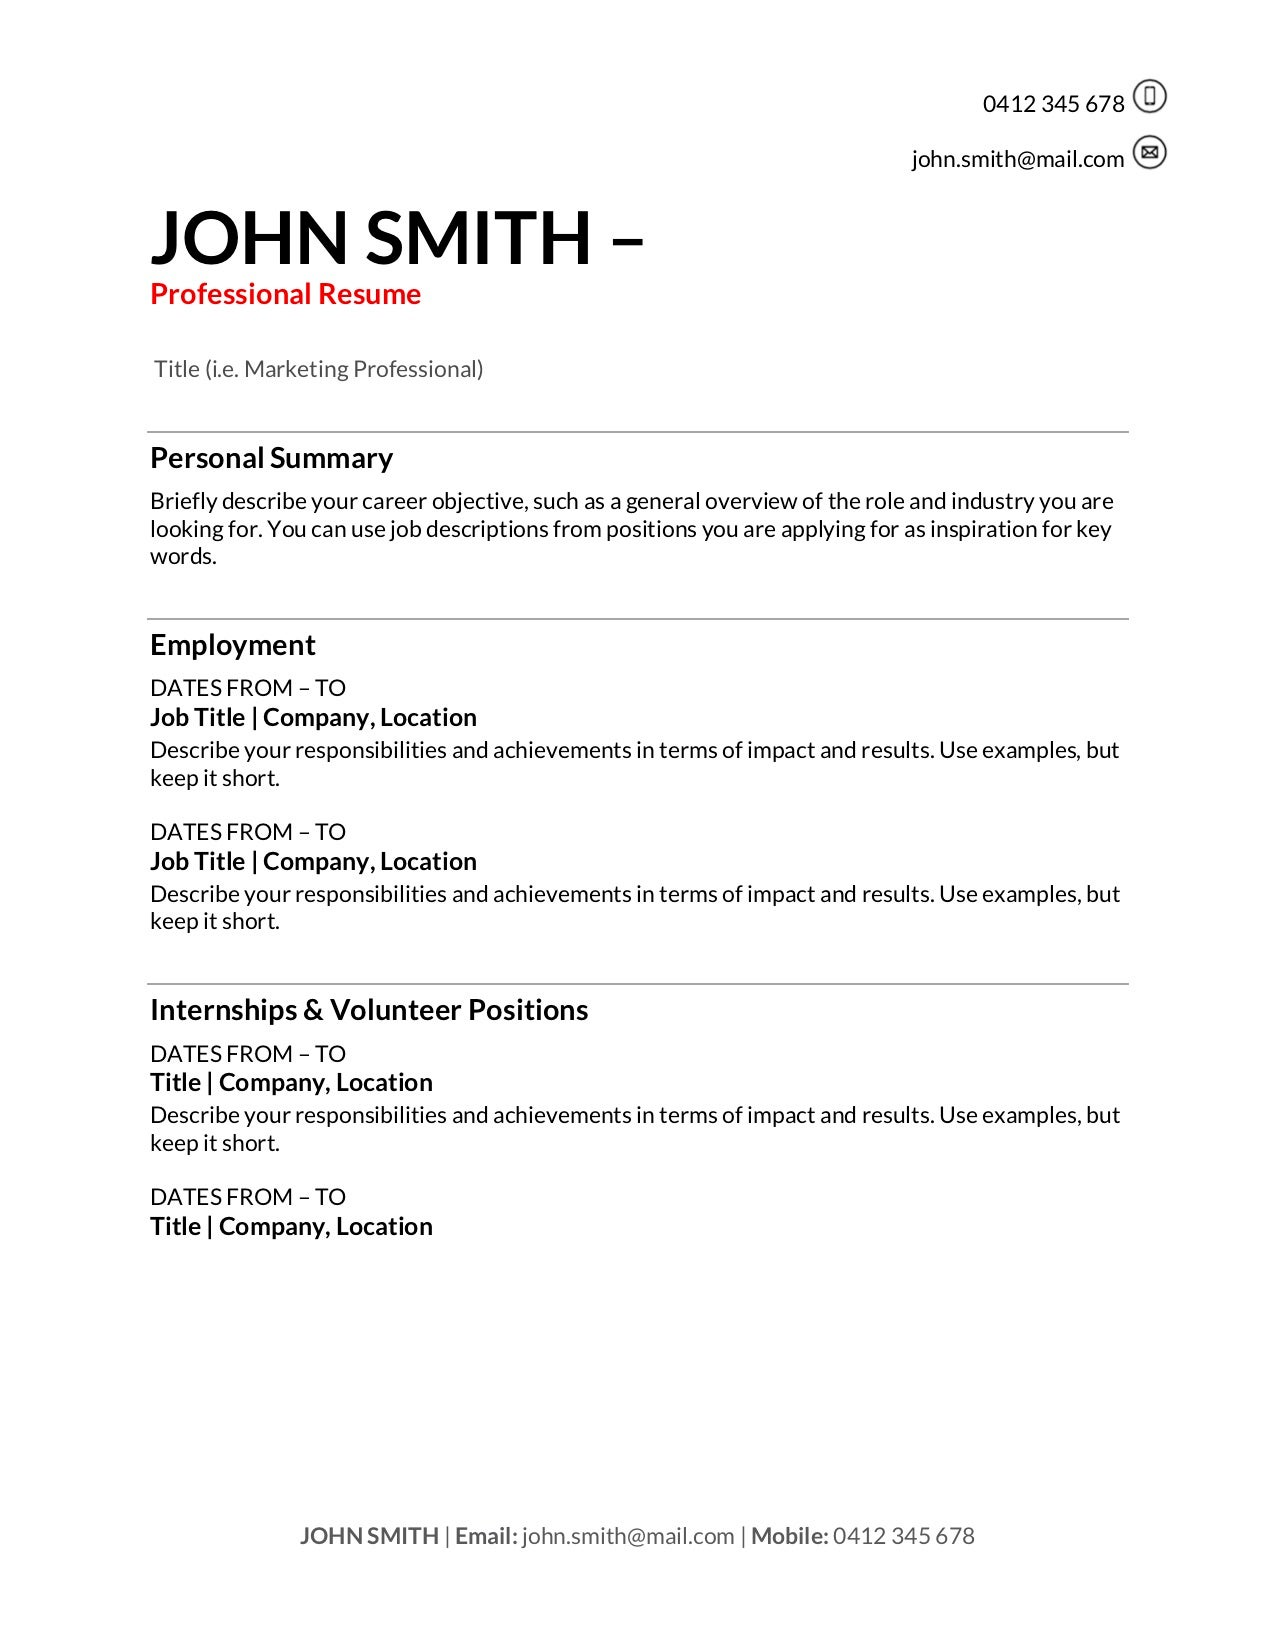 free resume templates to write in training au for one term job writing business template Resume Resume For One Long Term Job